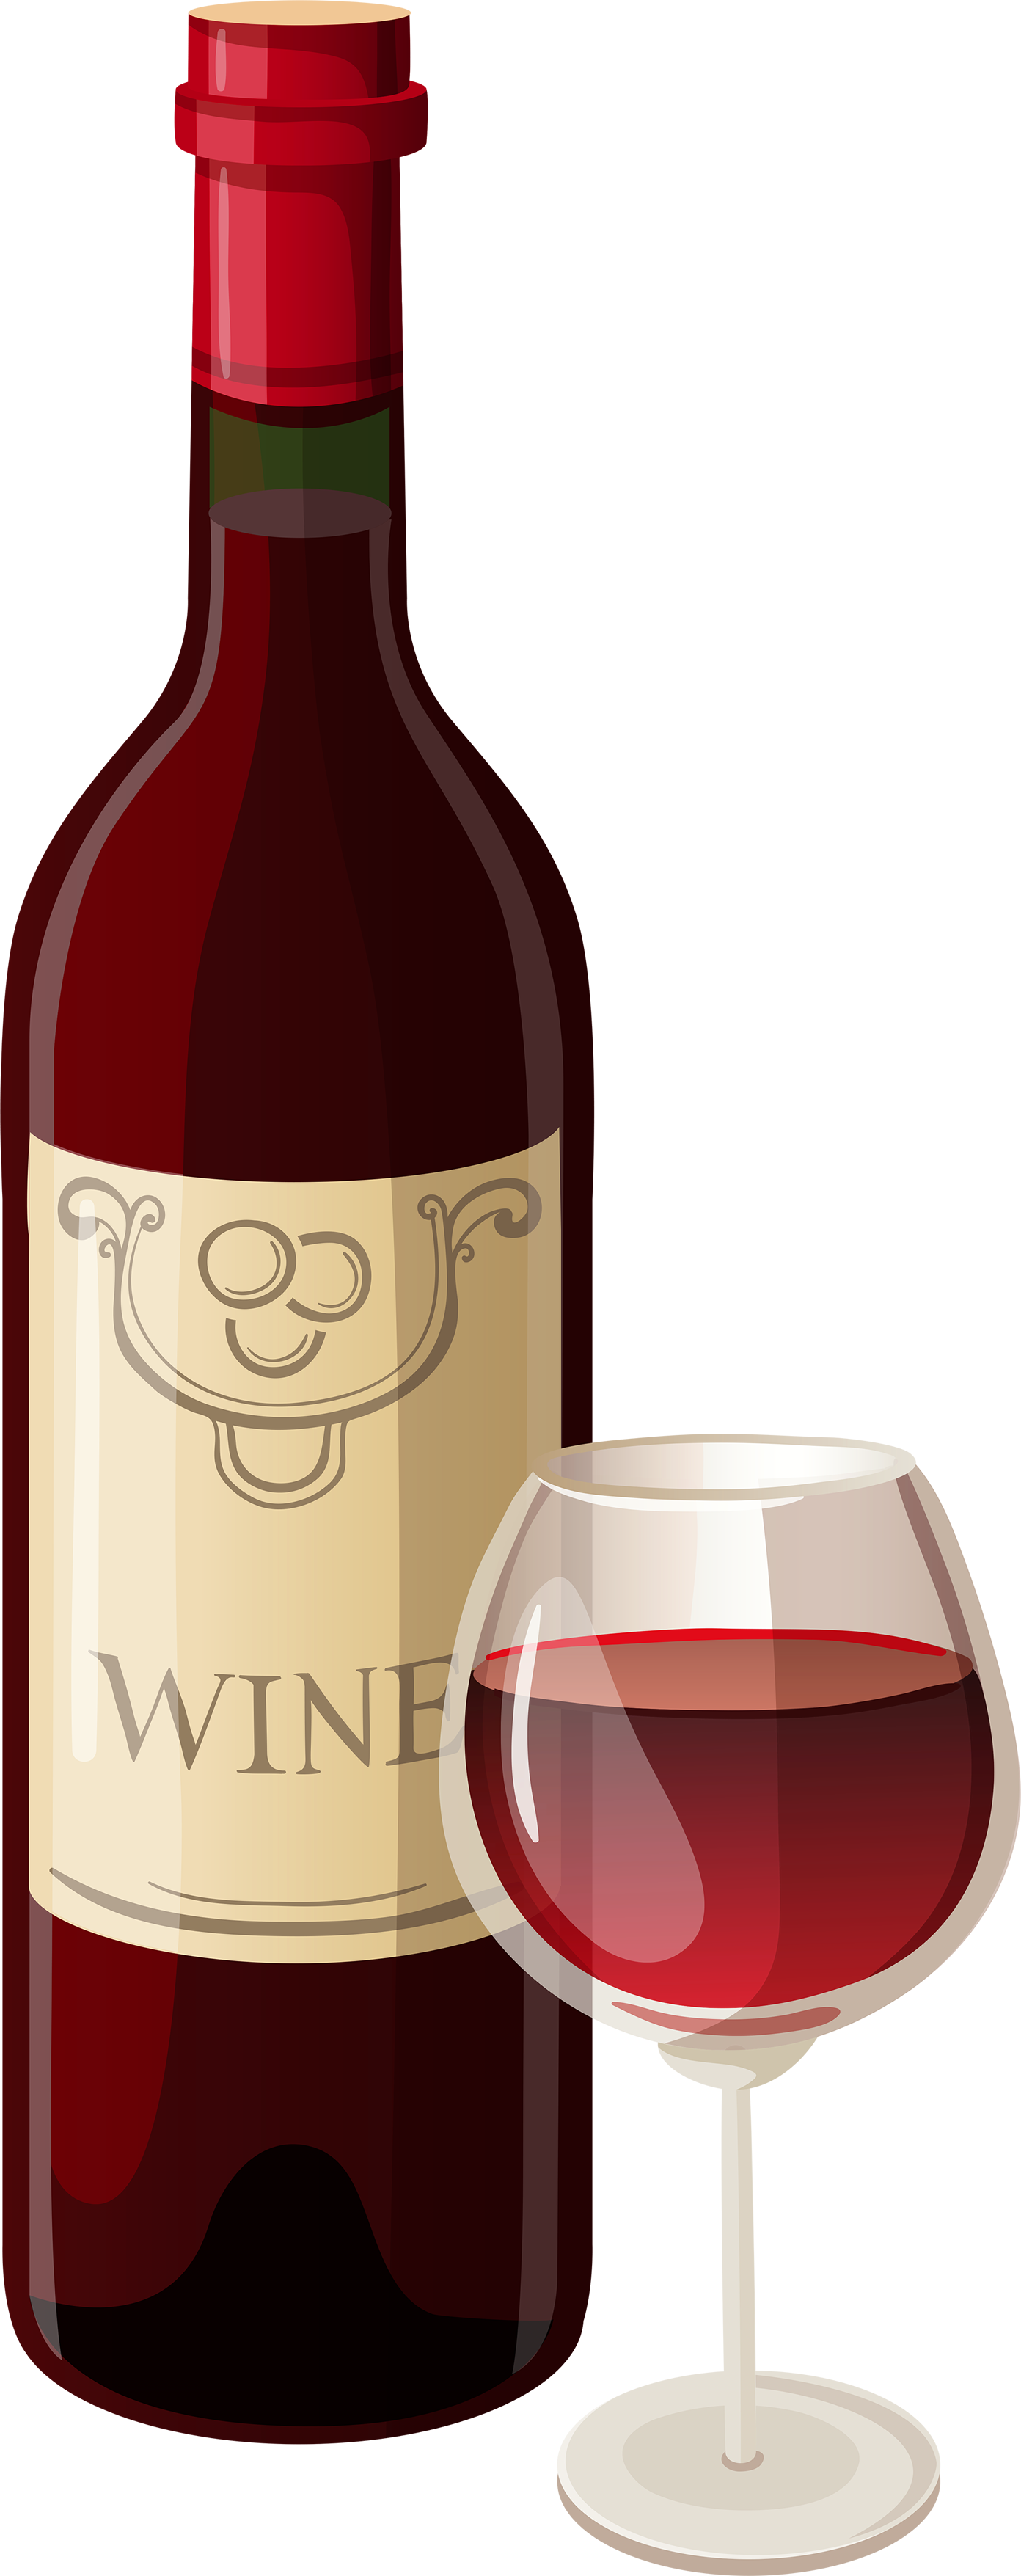 Wine Png Transparent Image - Wine Bottle And Glass, Transparent background PNG HD thumbnail